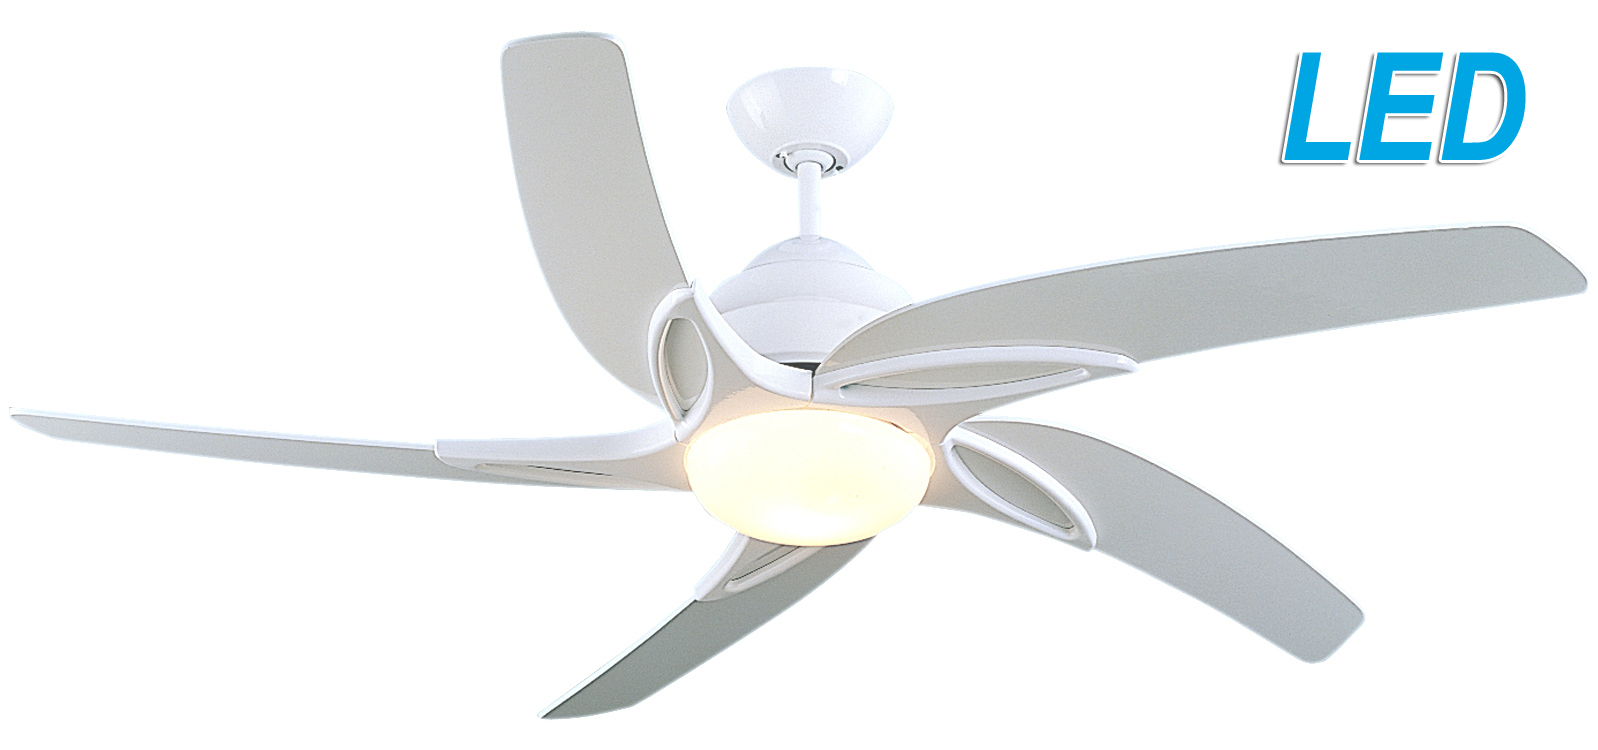 Fantasia viper 54 white ceiling fan remote control led light 115663 fantasia viper 54 white ceiling fan remote control led light 115663 aloadofball